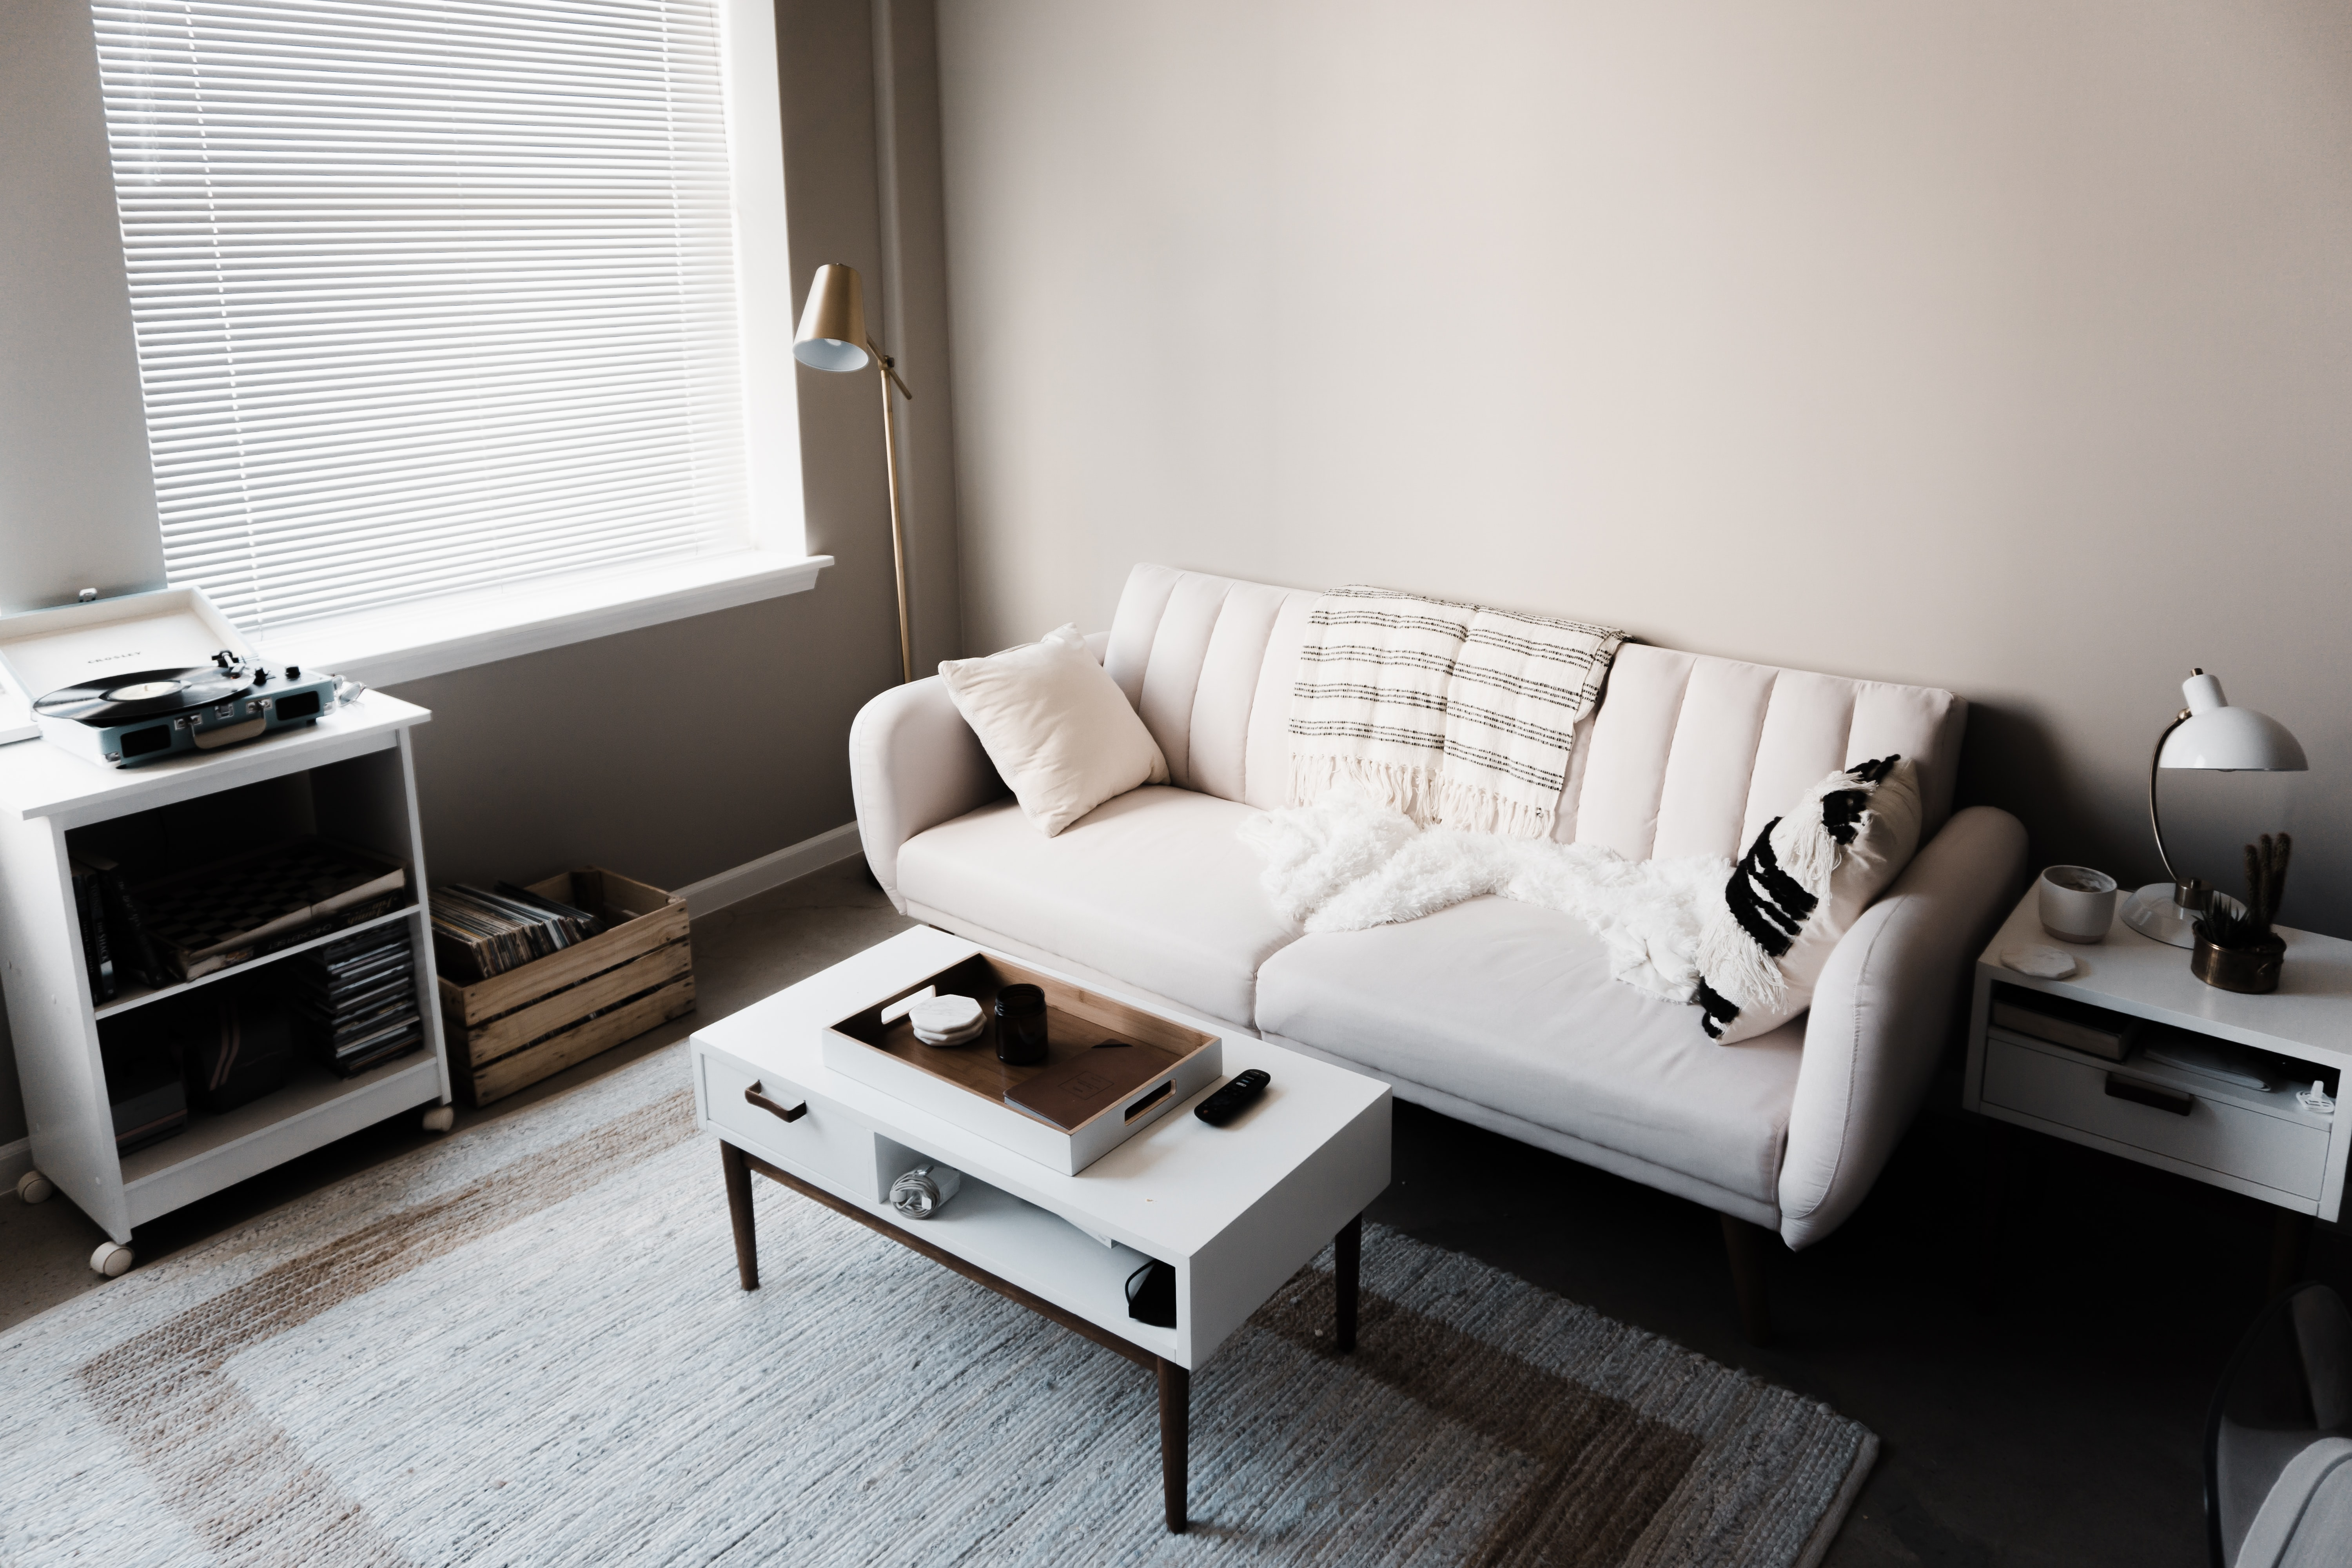 white couch in front of white wooden table